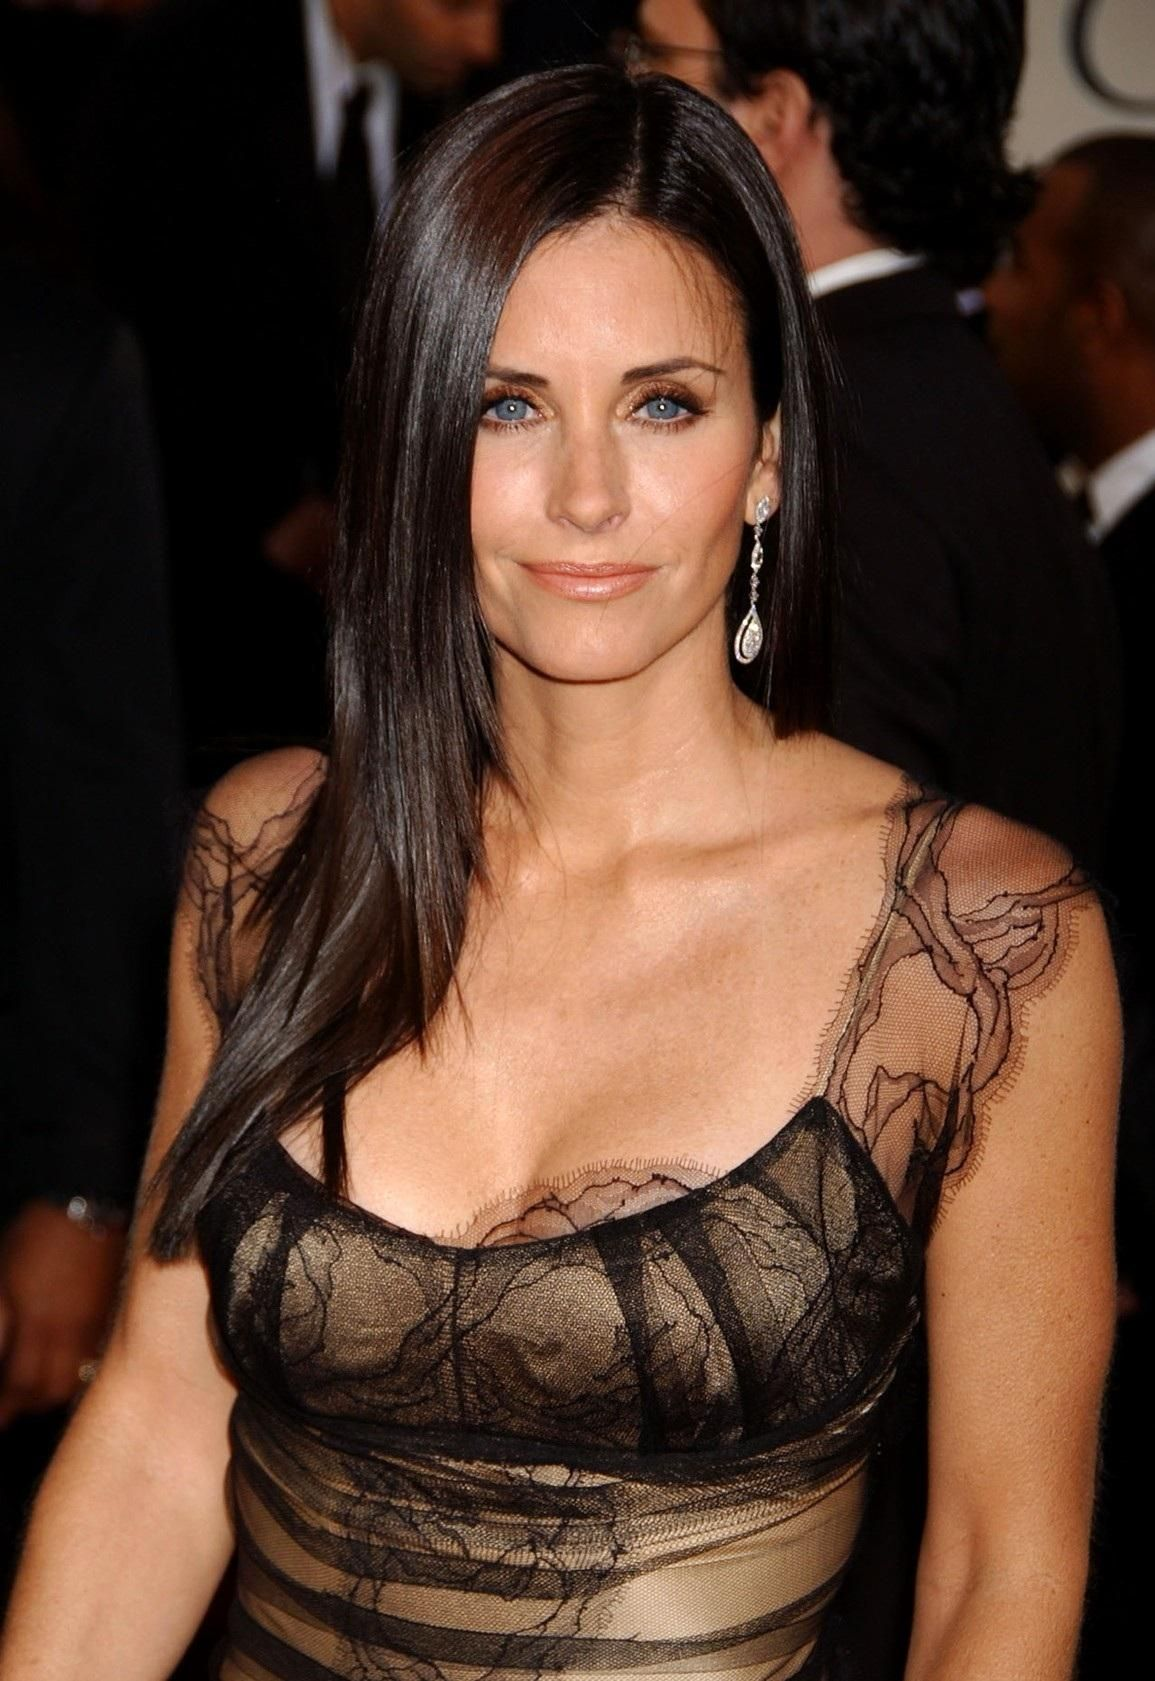 Me, Courtney cox hot have